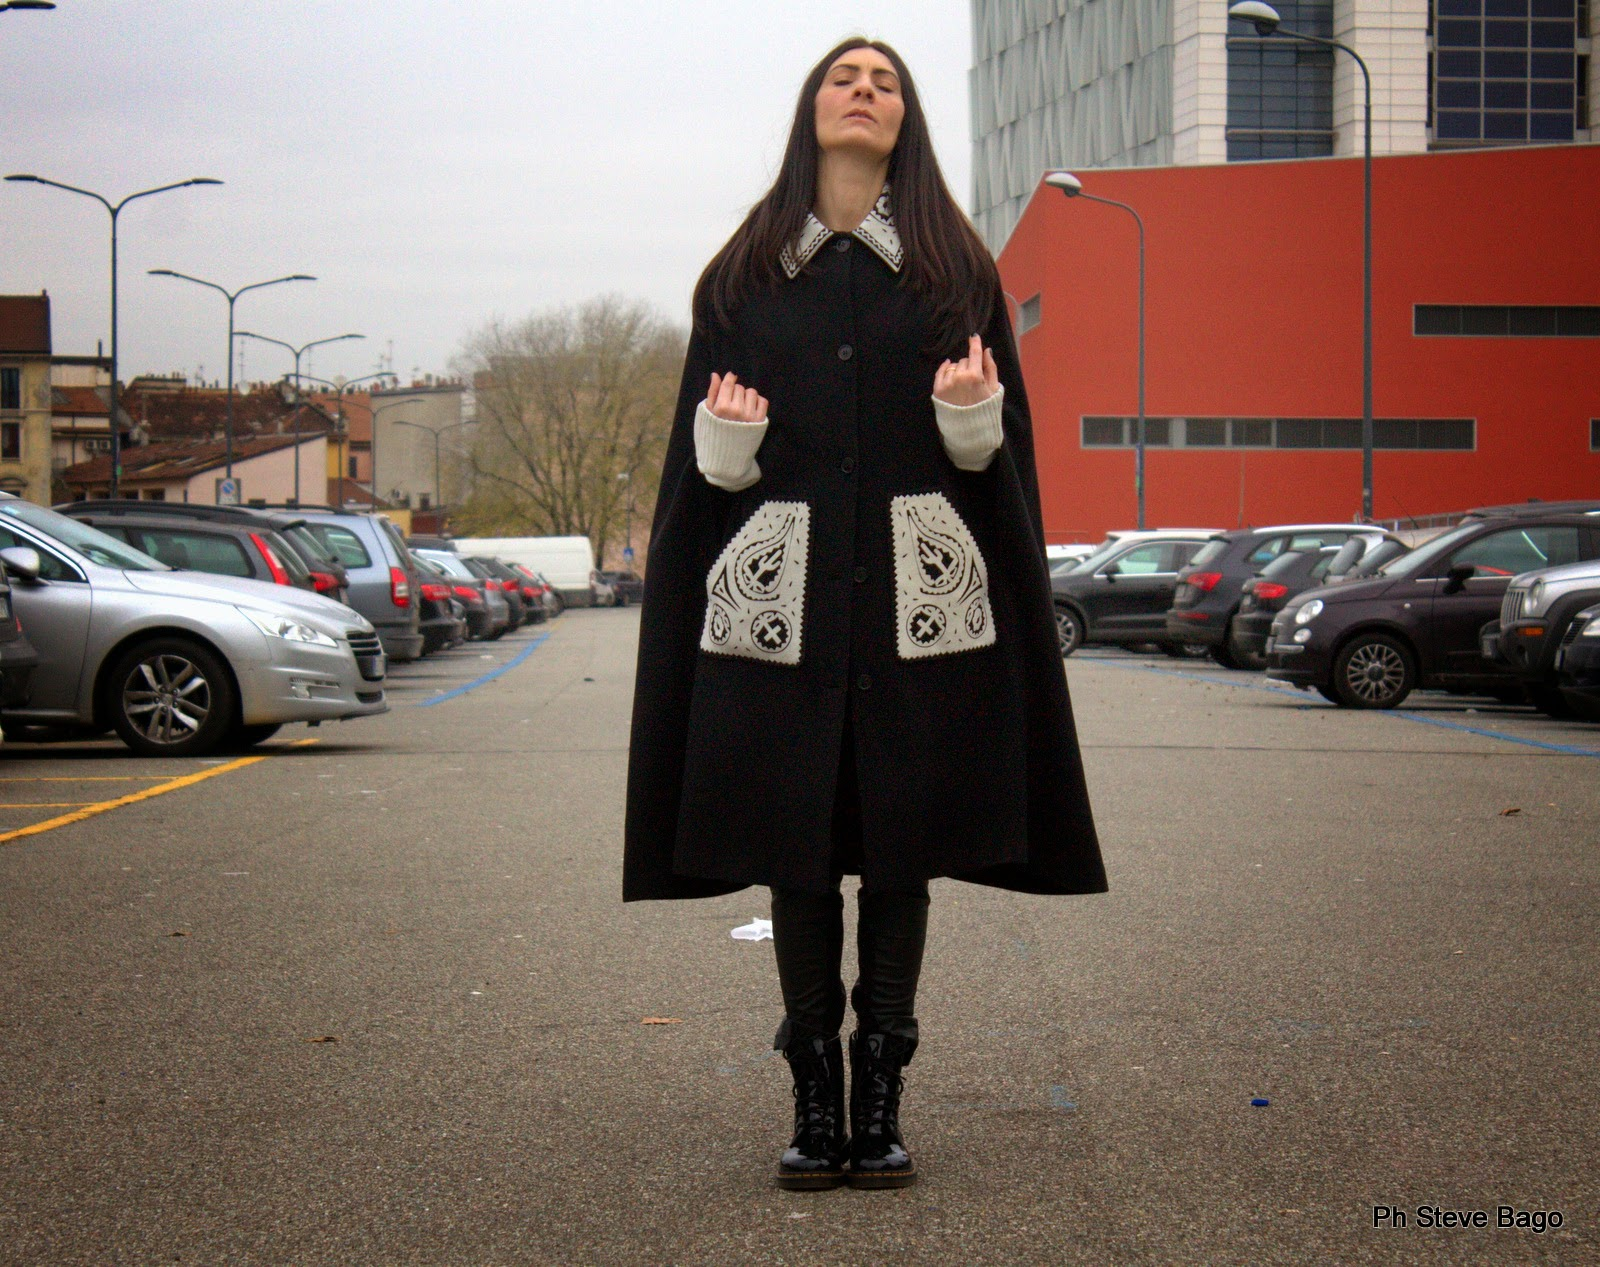 themorasmoothie, fashion, fashionblog, fashionblogger, ivanahelsinki, capa, dr martens, ivana helsinki, fashion, outfit, ootd, look, themorasmoothieoutfit, lookoftheday, outfittheday, shopping, shopping on line, moda, mode, blogger, italianblogger, italianfashionblogger, girl, me, model